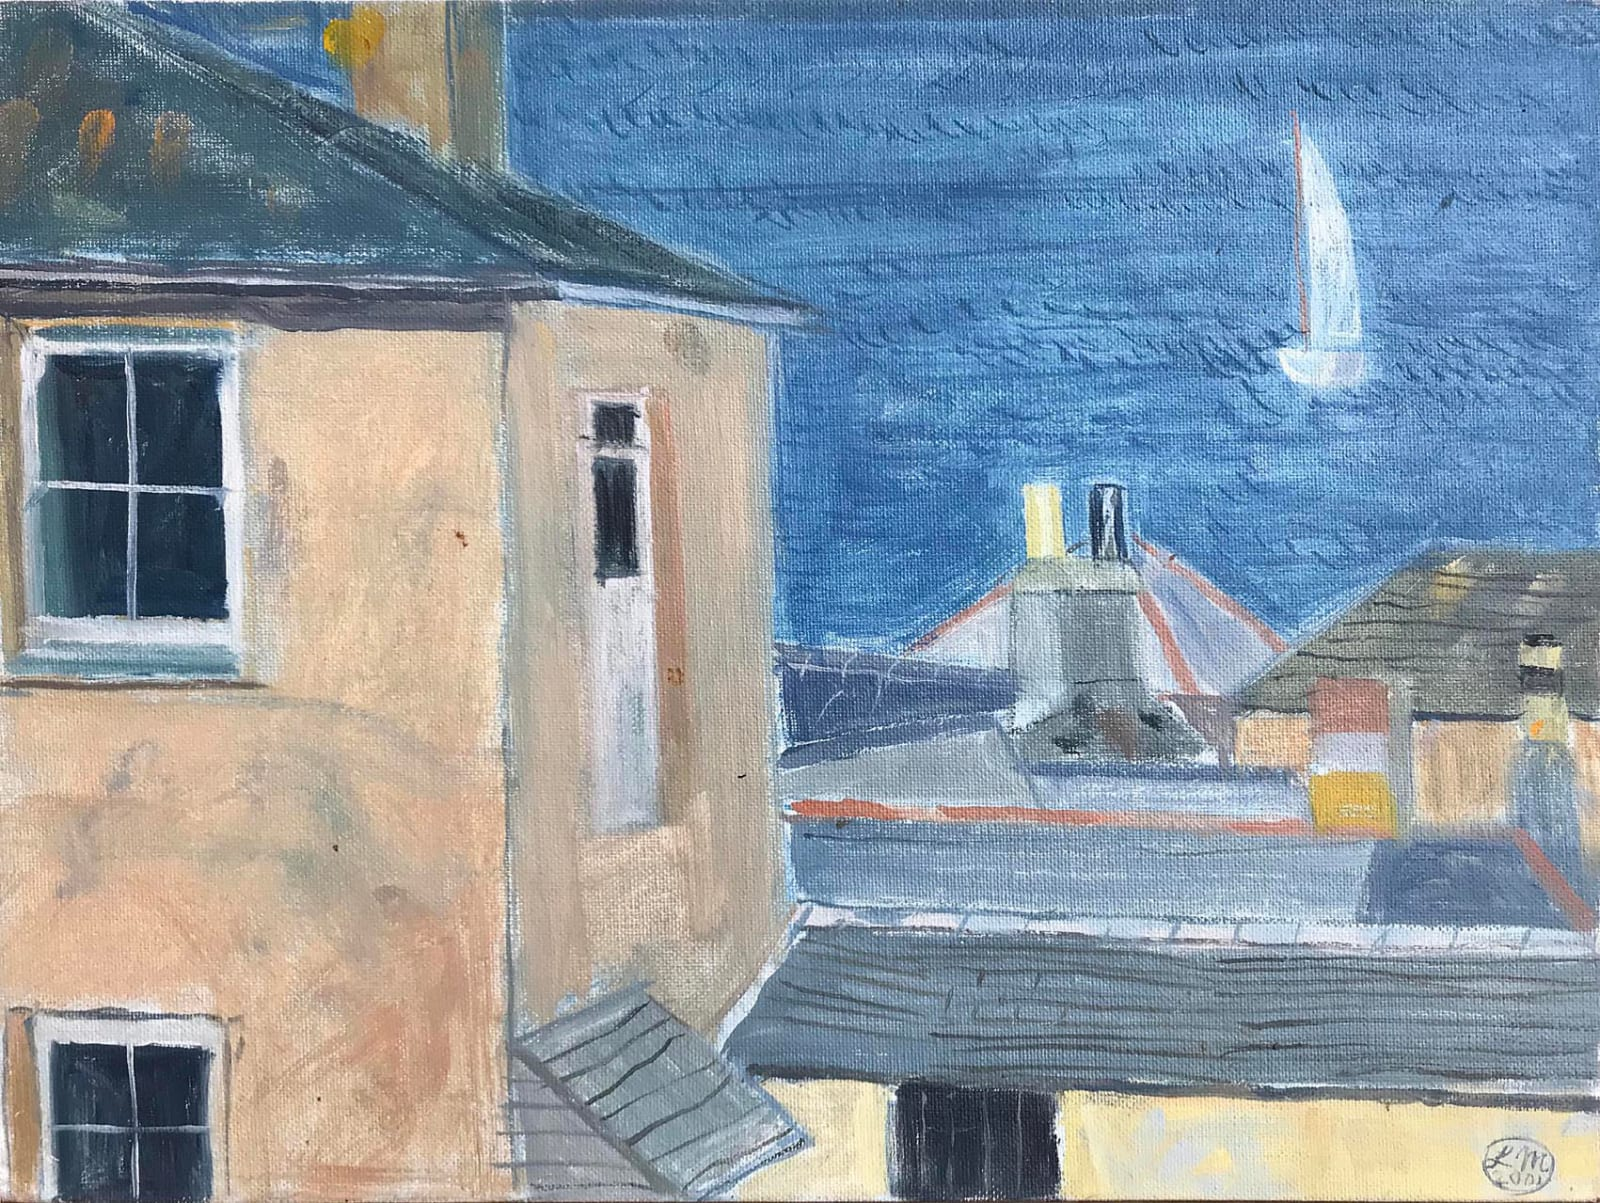 Leonard Mccomb, Sea View Past Houses, 2001